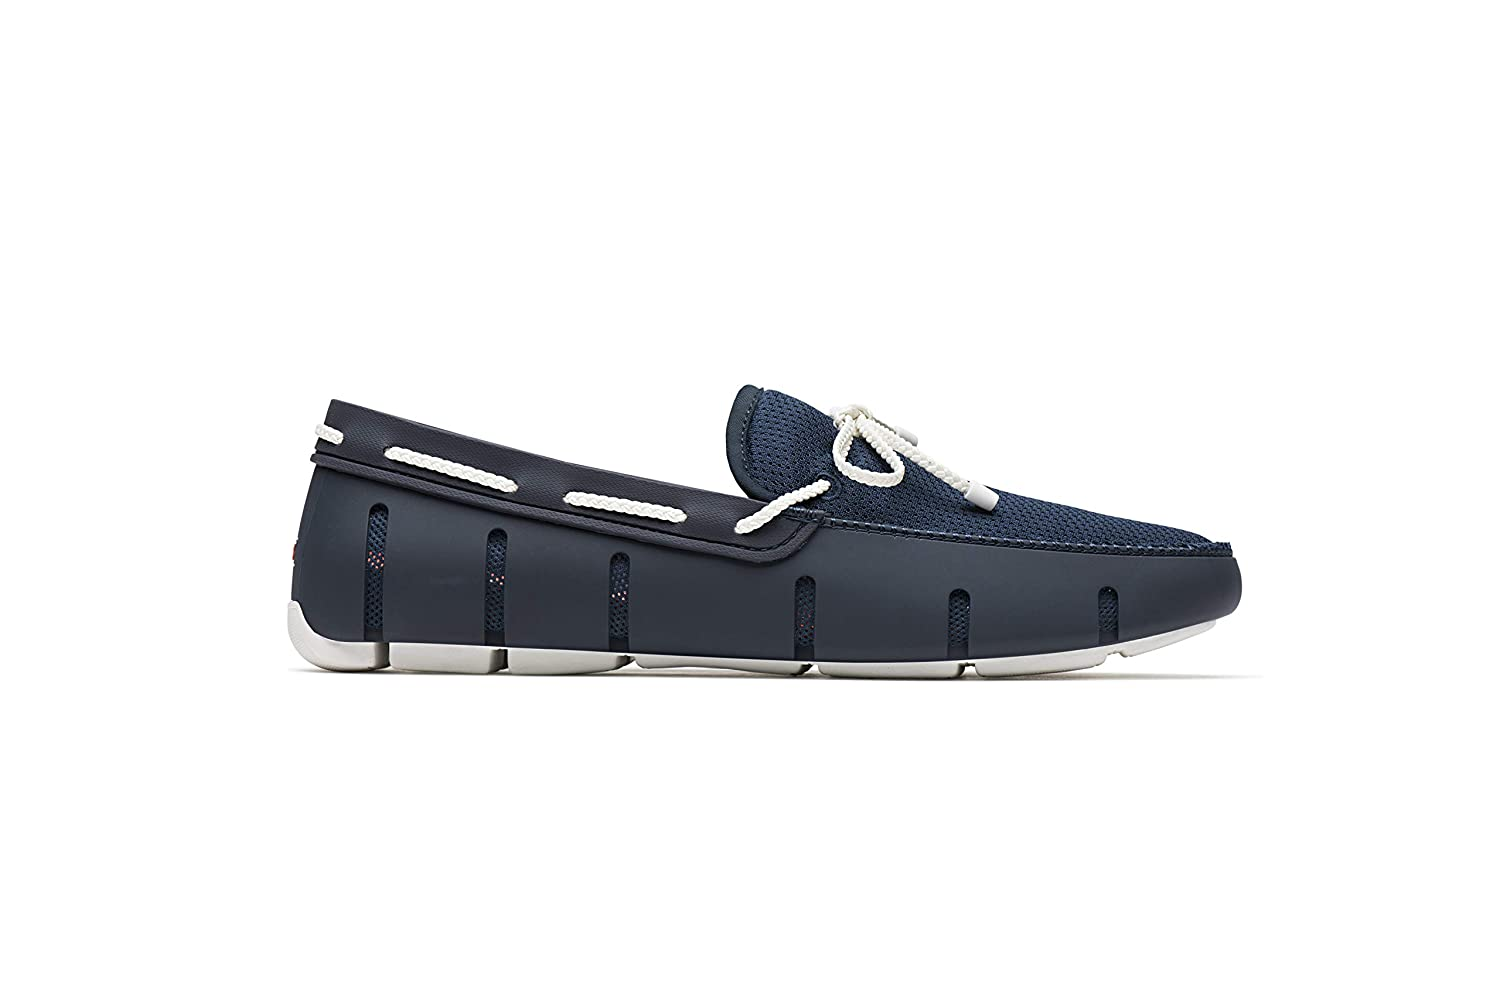 TALLA 42 EU. Swims Braided Lace Loafer, Mocasines para Hombre